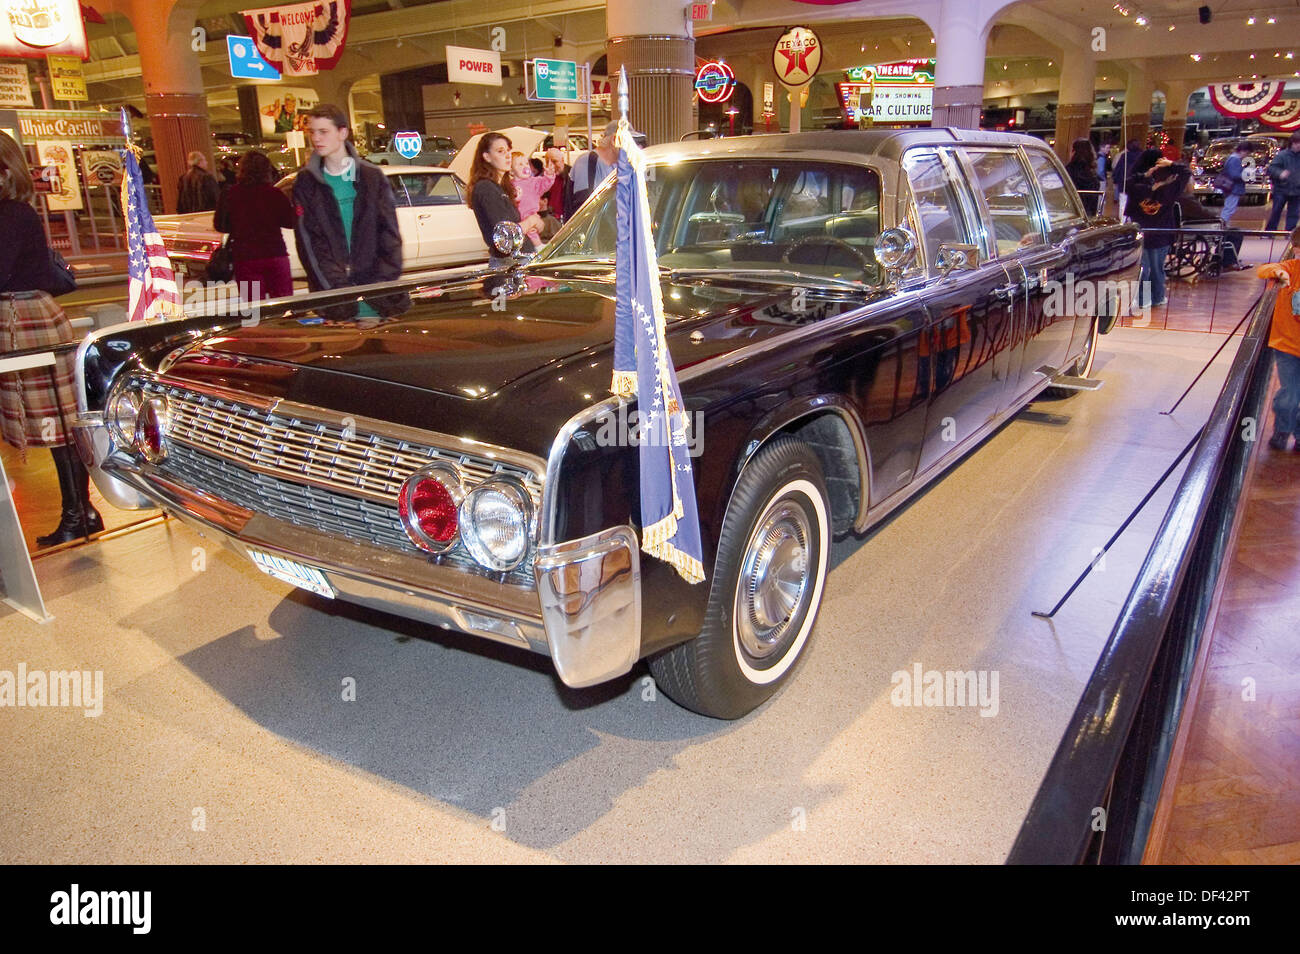 Limousine in which President John F Kennedy was assassinated